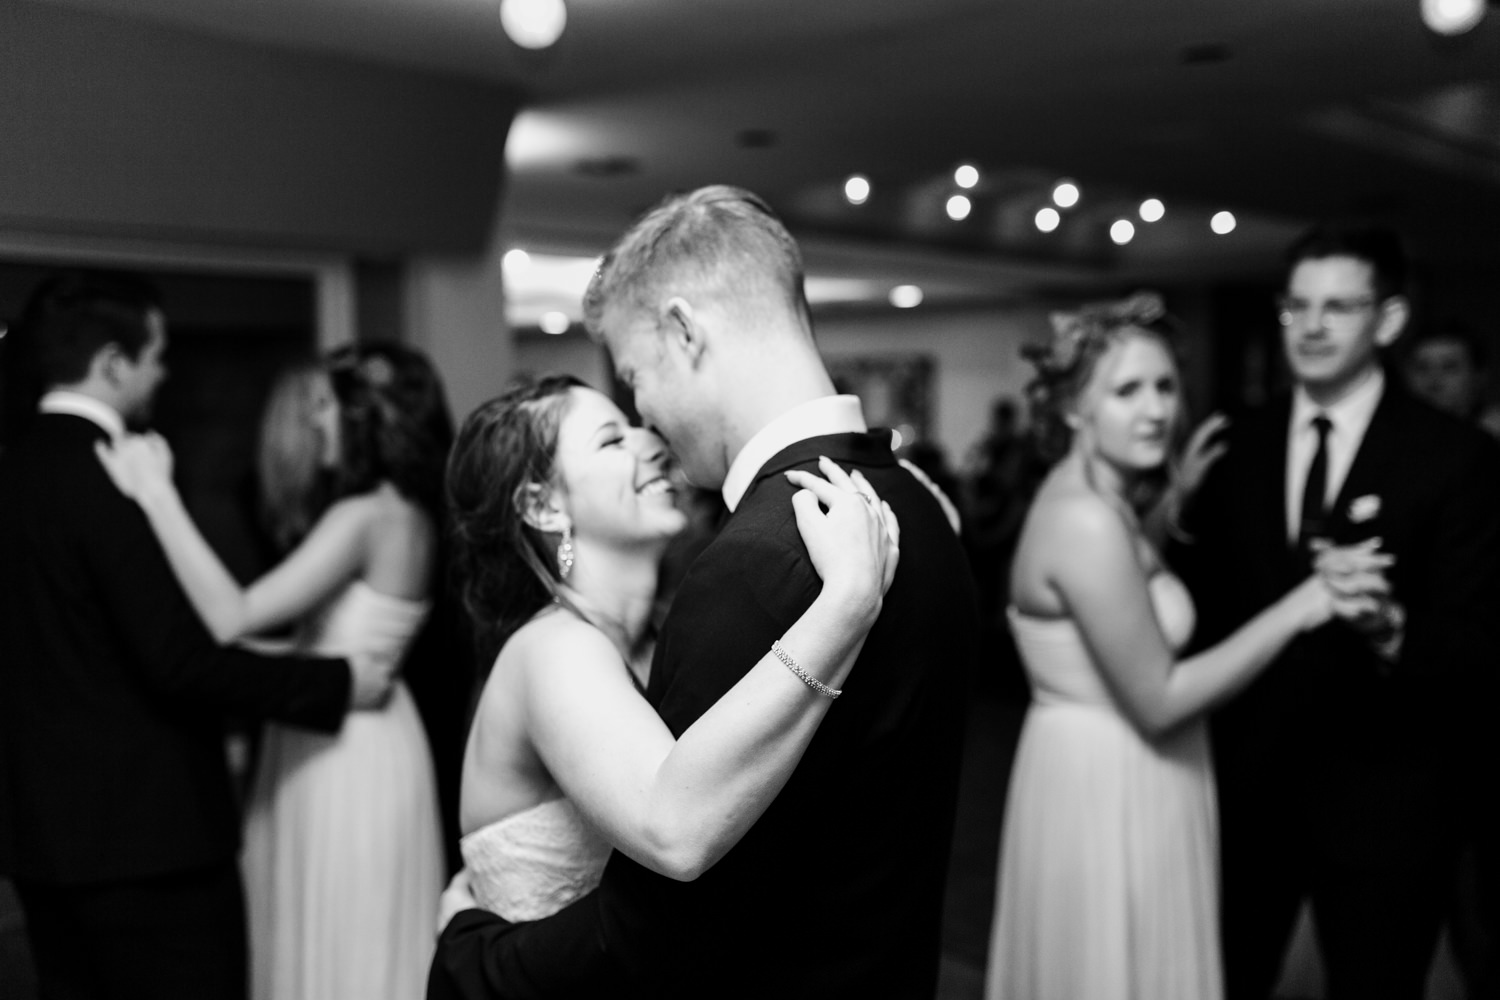 michigan-wedding-spencer-and-mikayla-43.jpg